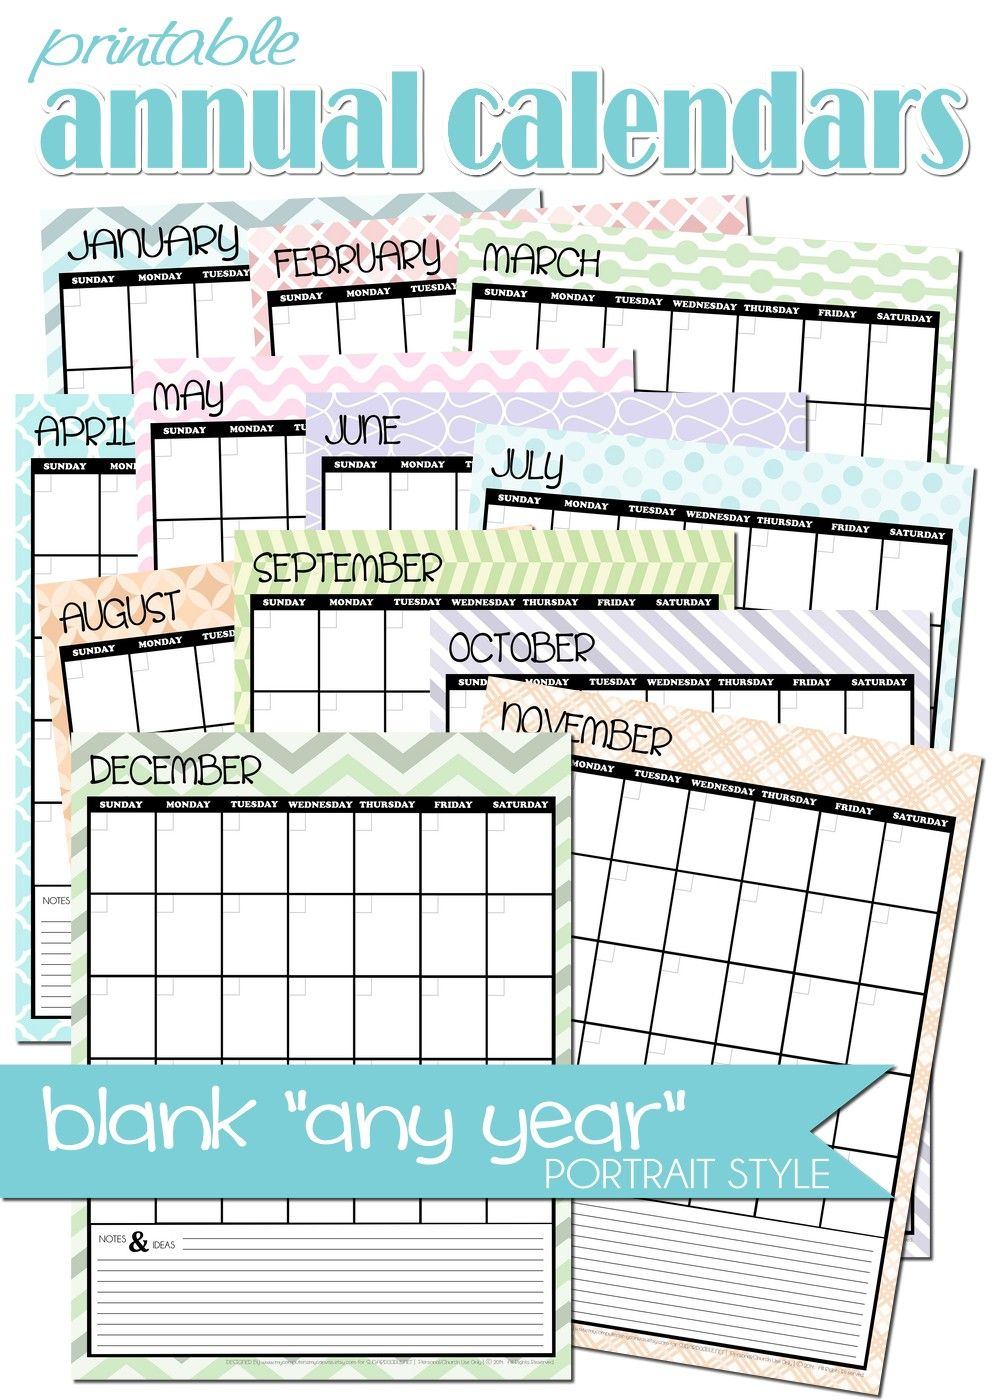 Calendar Ideas Y : Freebie blank any year calendar organization ideas